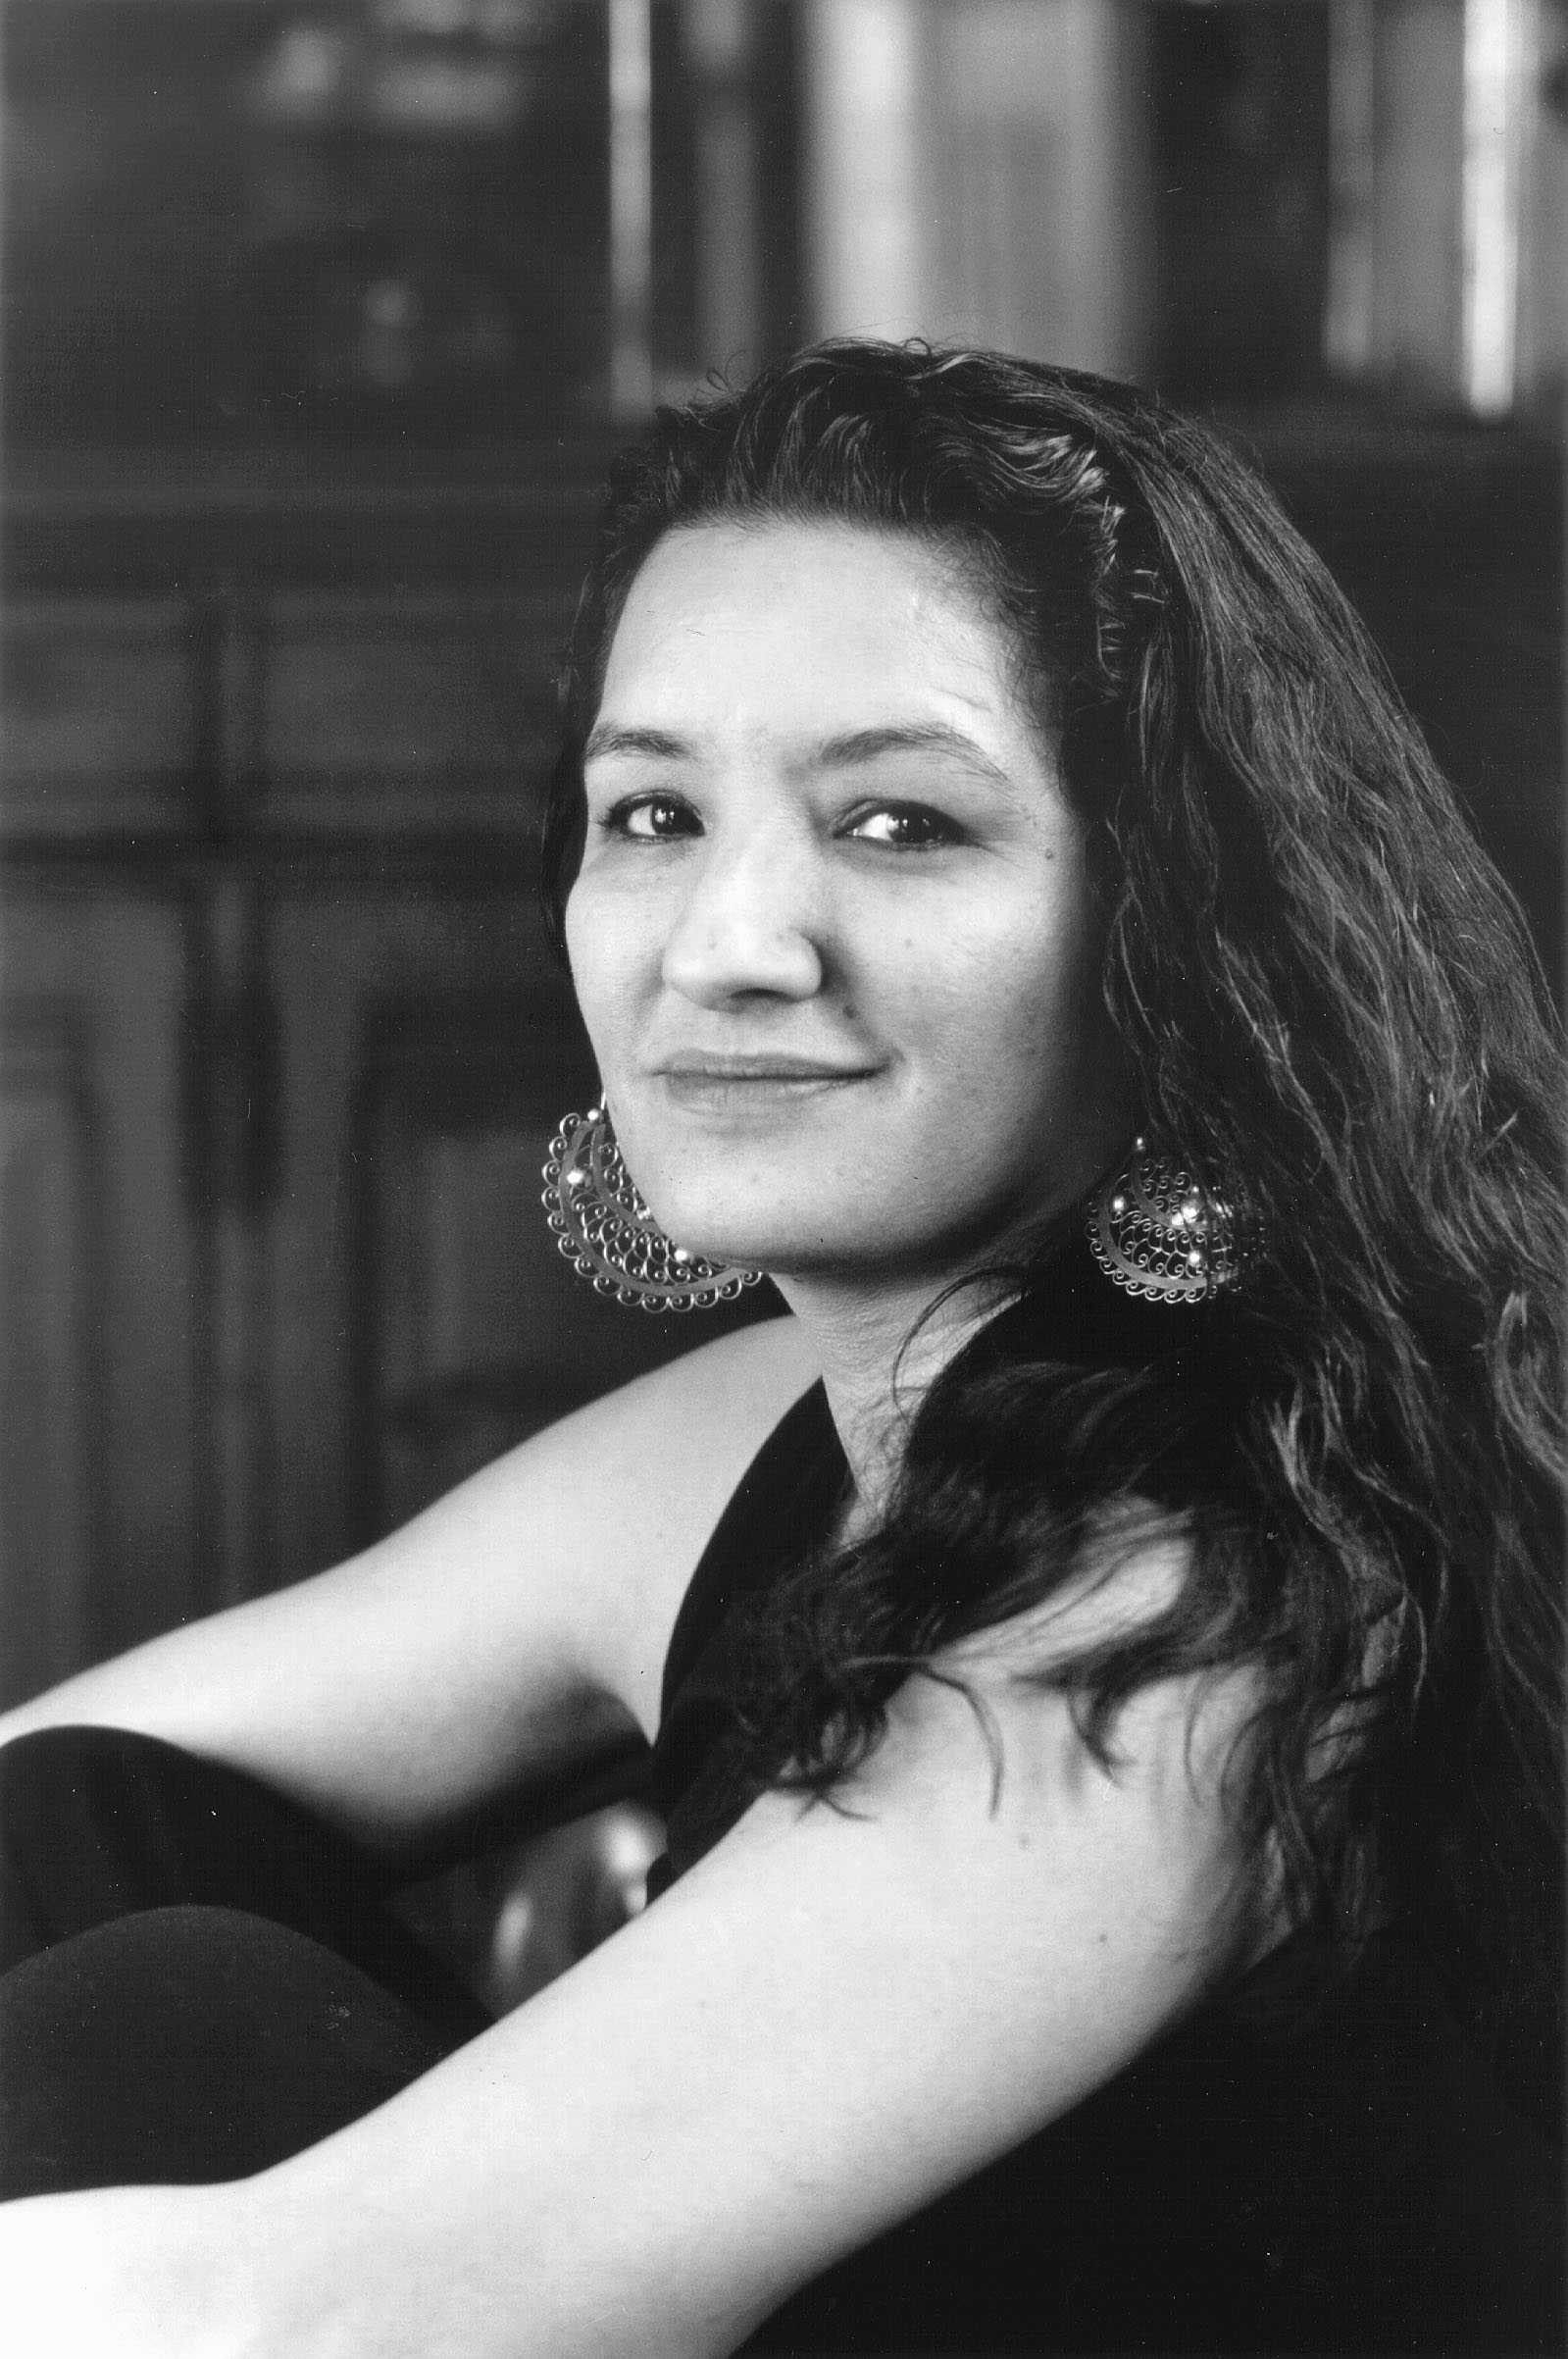 an analysis of the short story the house on mango street by sandra cisneros Free summary and analysis of the events in sandra cisneros's the house on mango street that won't make you snore we promise.